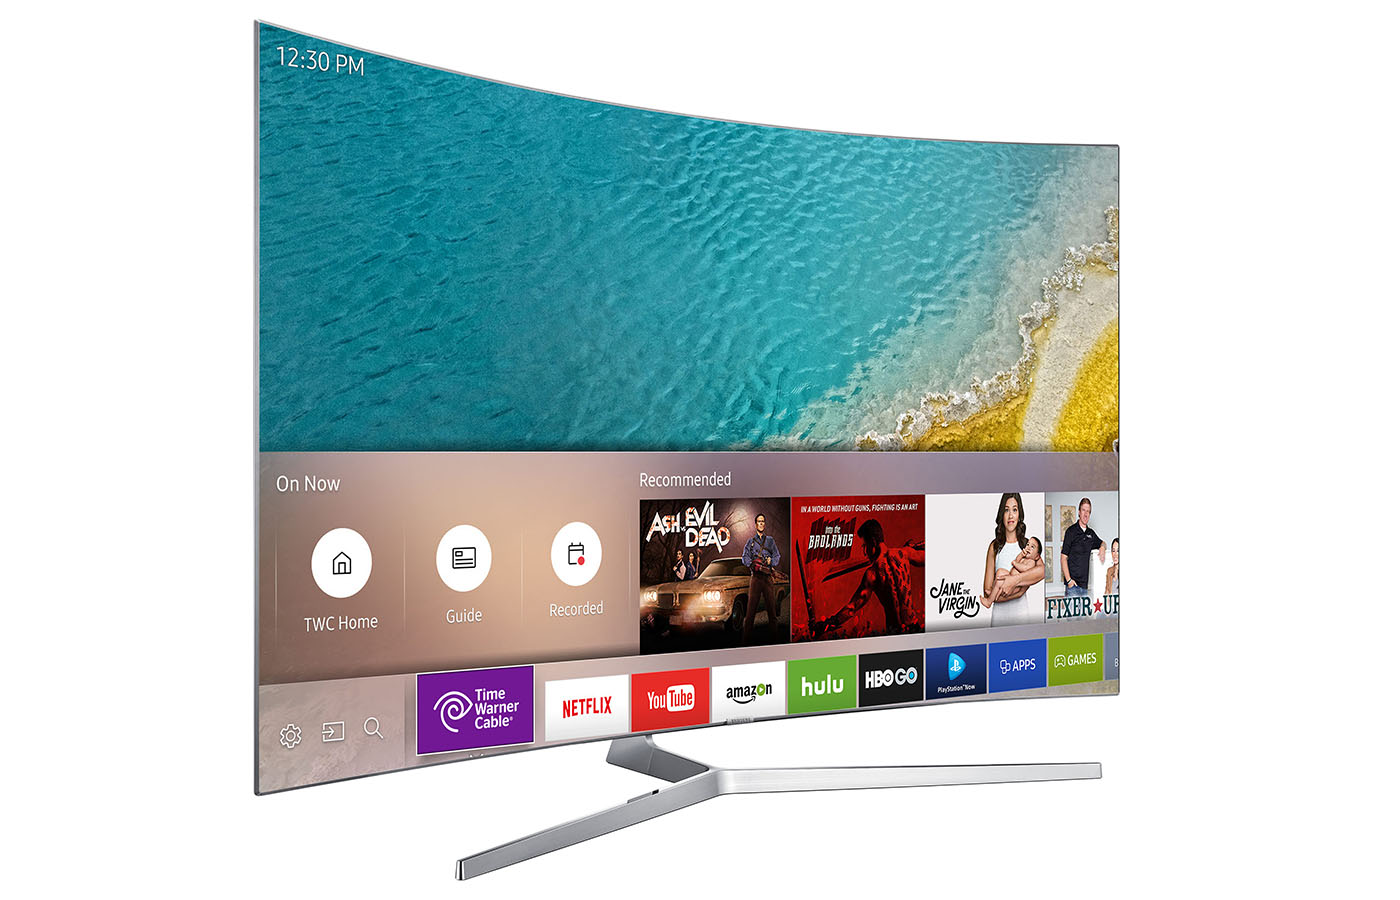 samsung-smart-tv-ui-2016-01-05-01